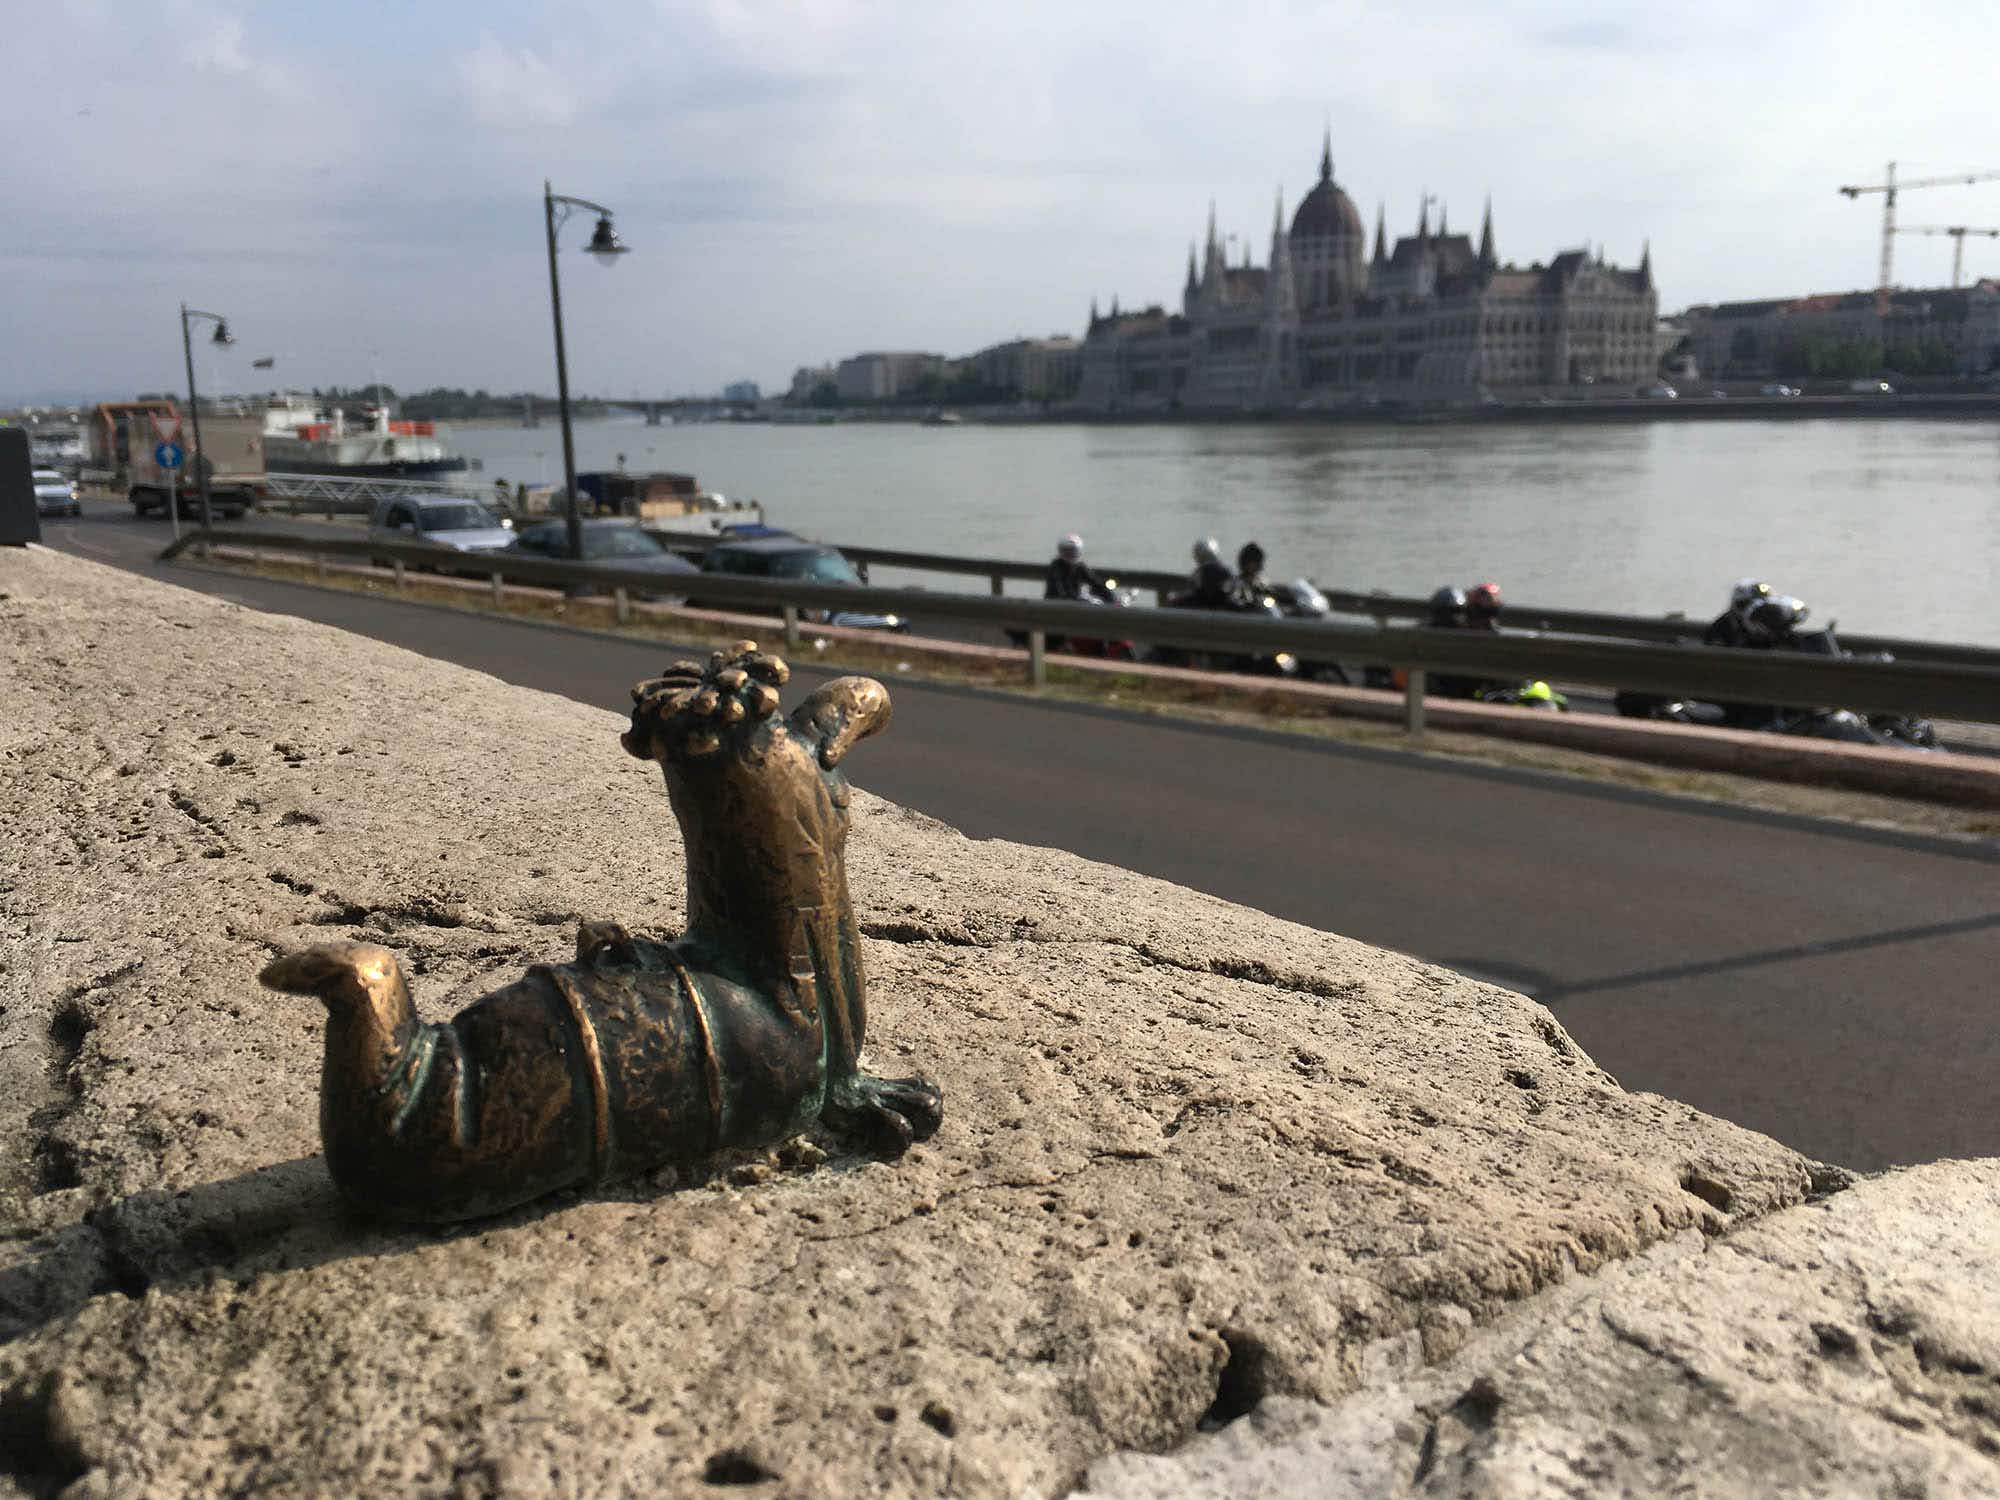 Budapest's tiny, hidden bronze statues will put a smile on your face